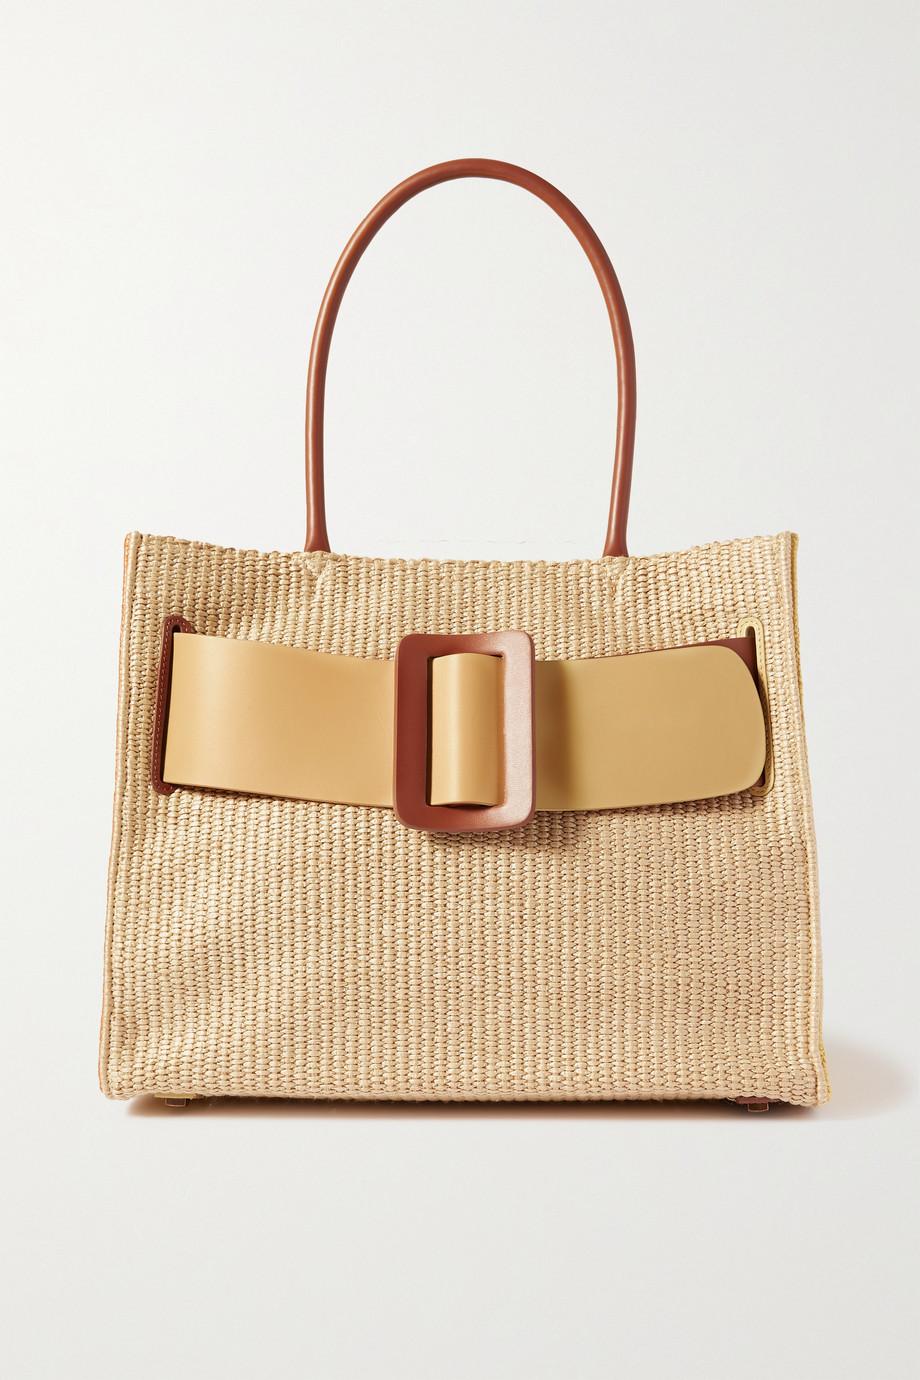 BOYY Bobby 36 buckled color-block leather-trimmed raffia tote